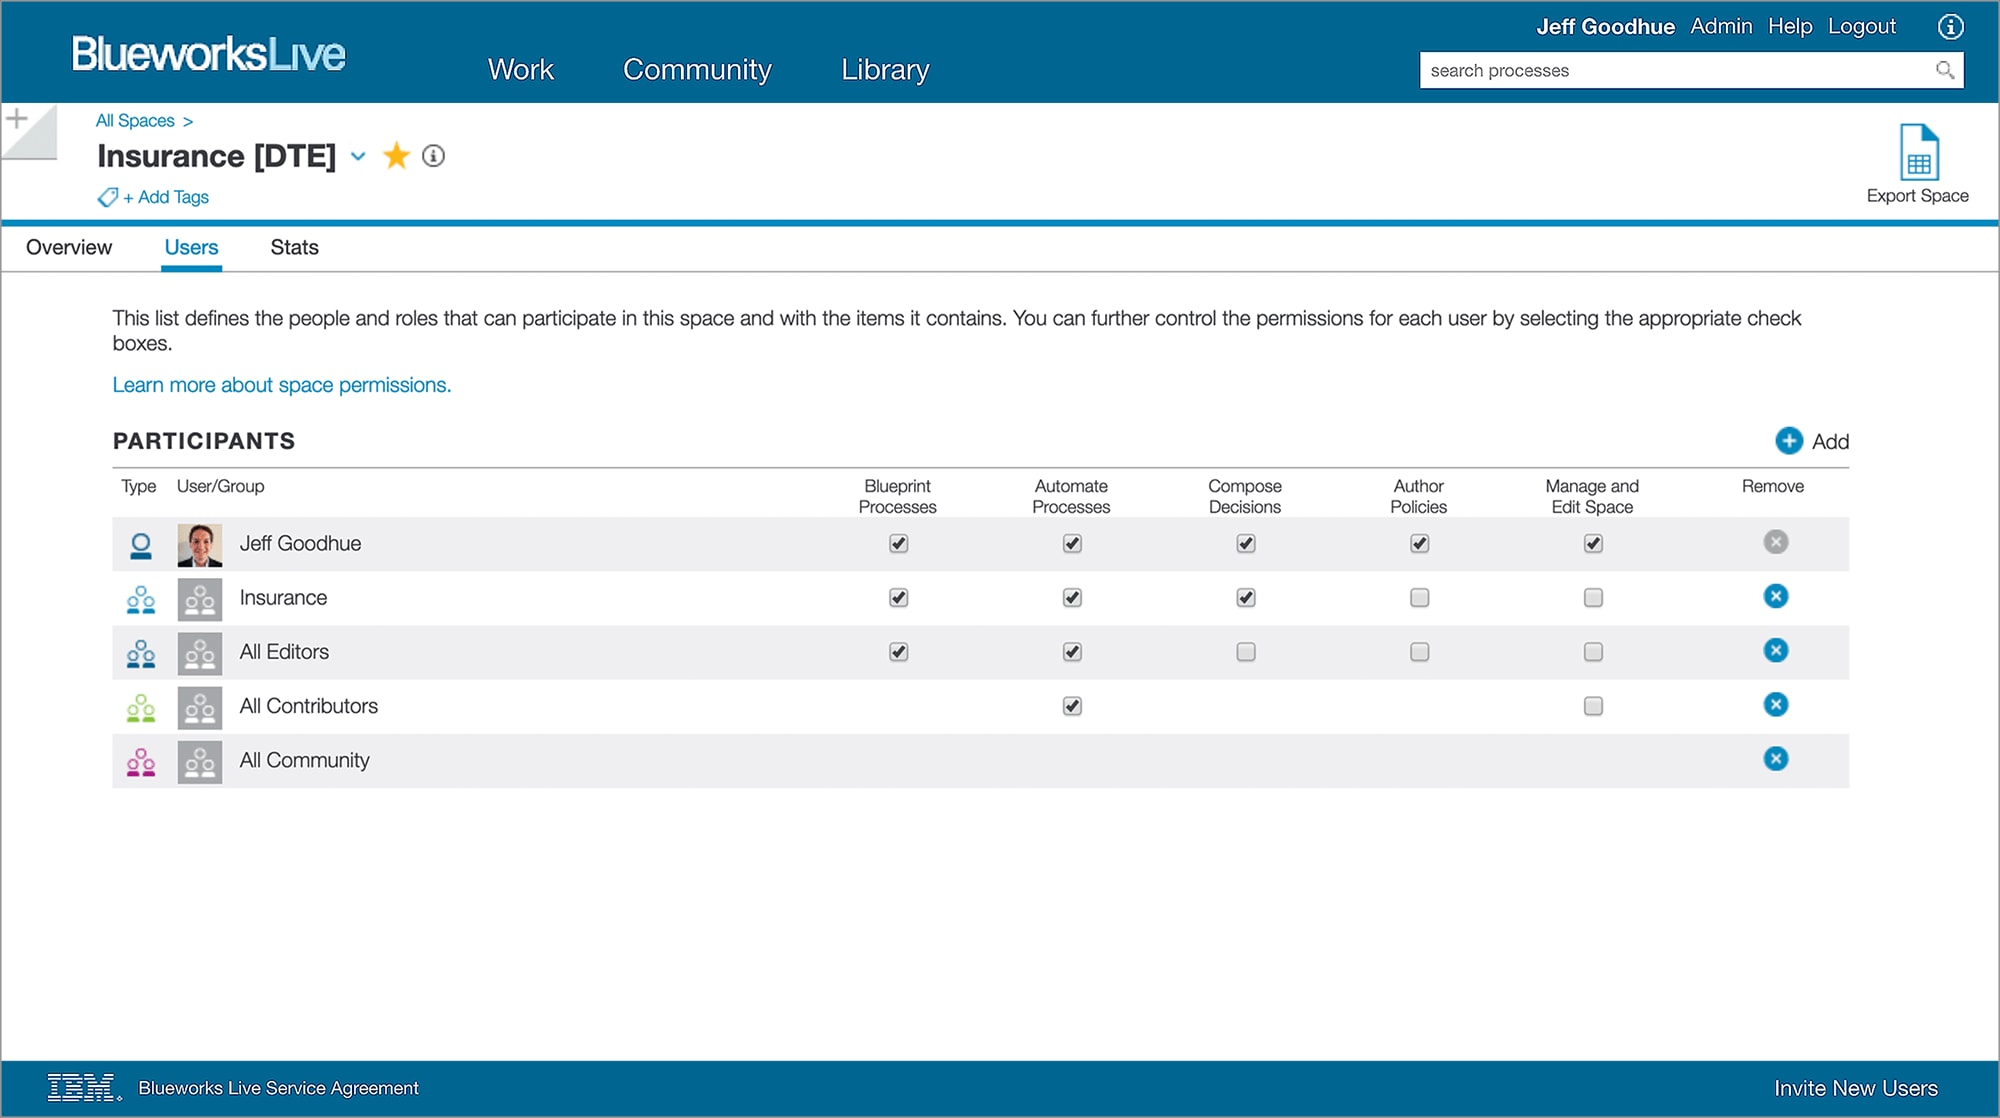 IBM Blueworks Live page, showing how flexible permissions operate.